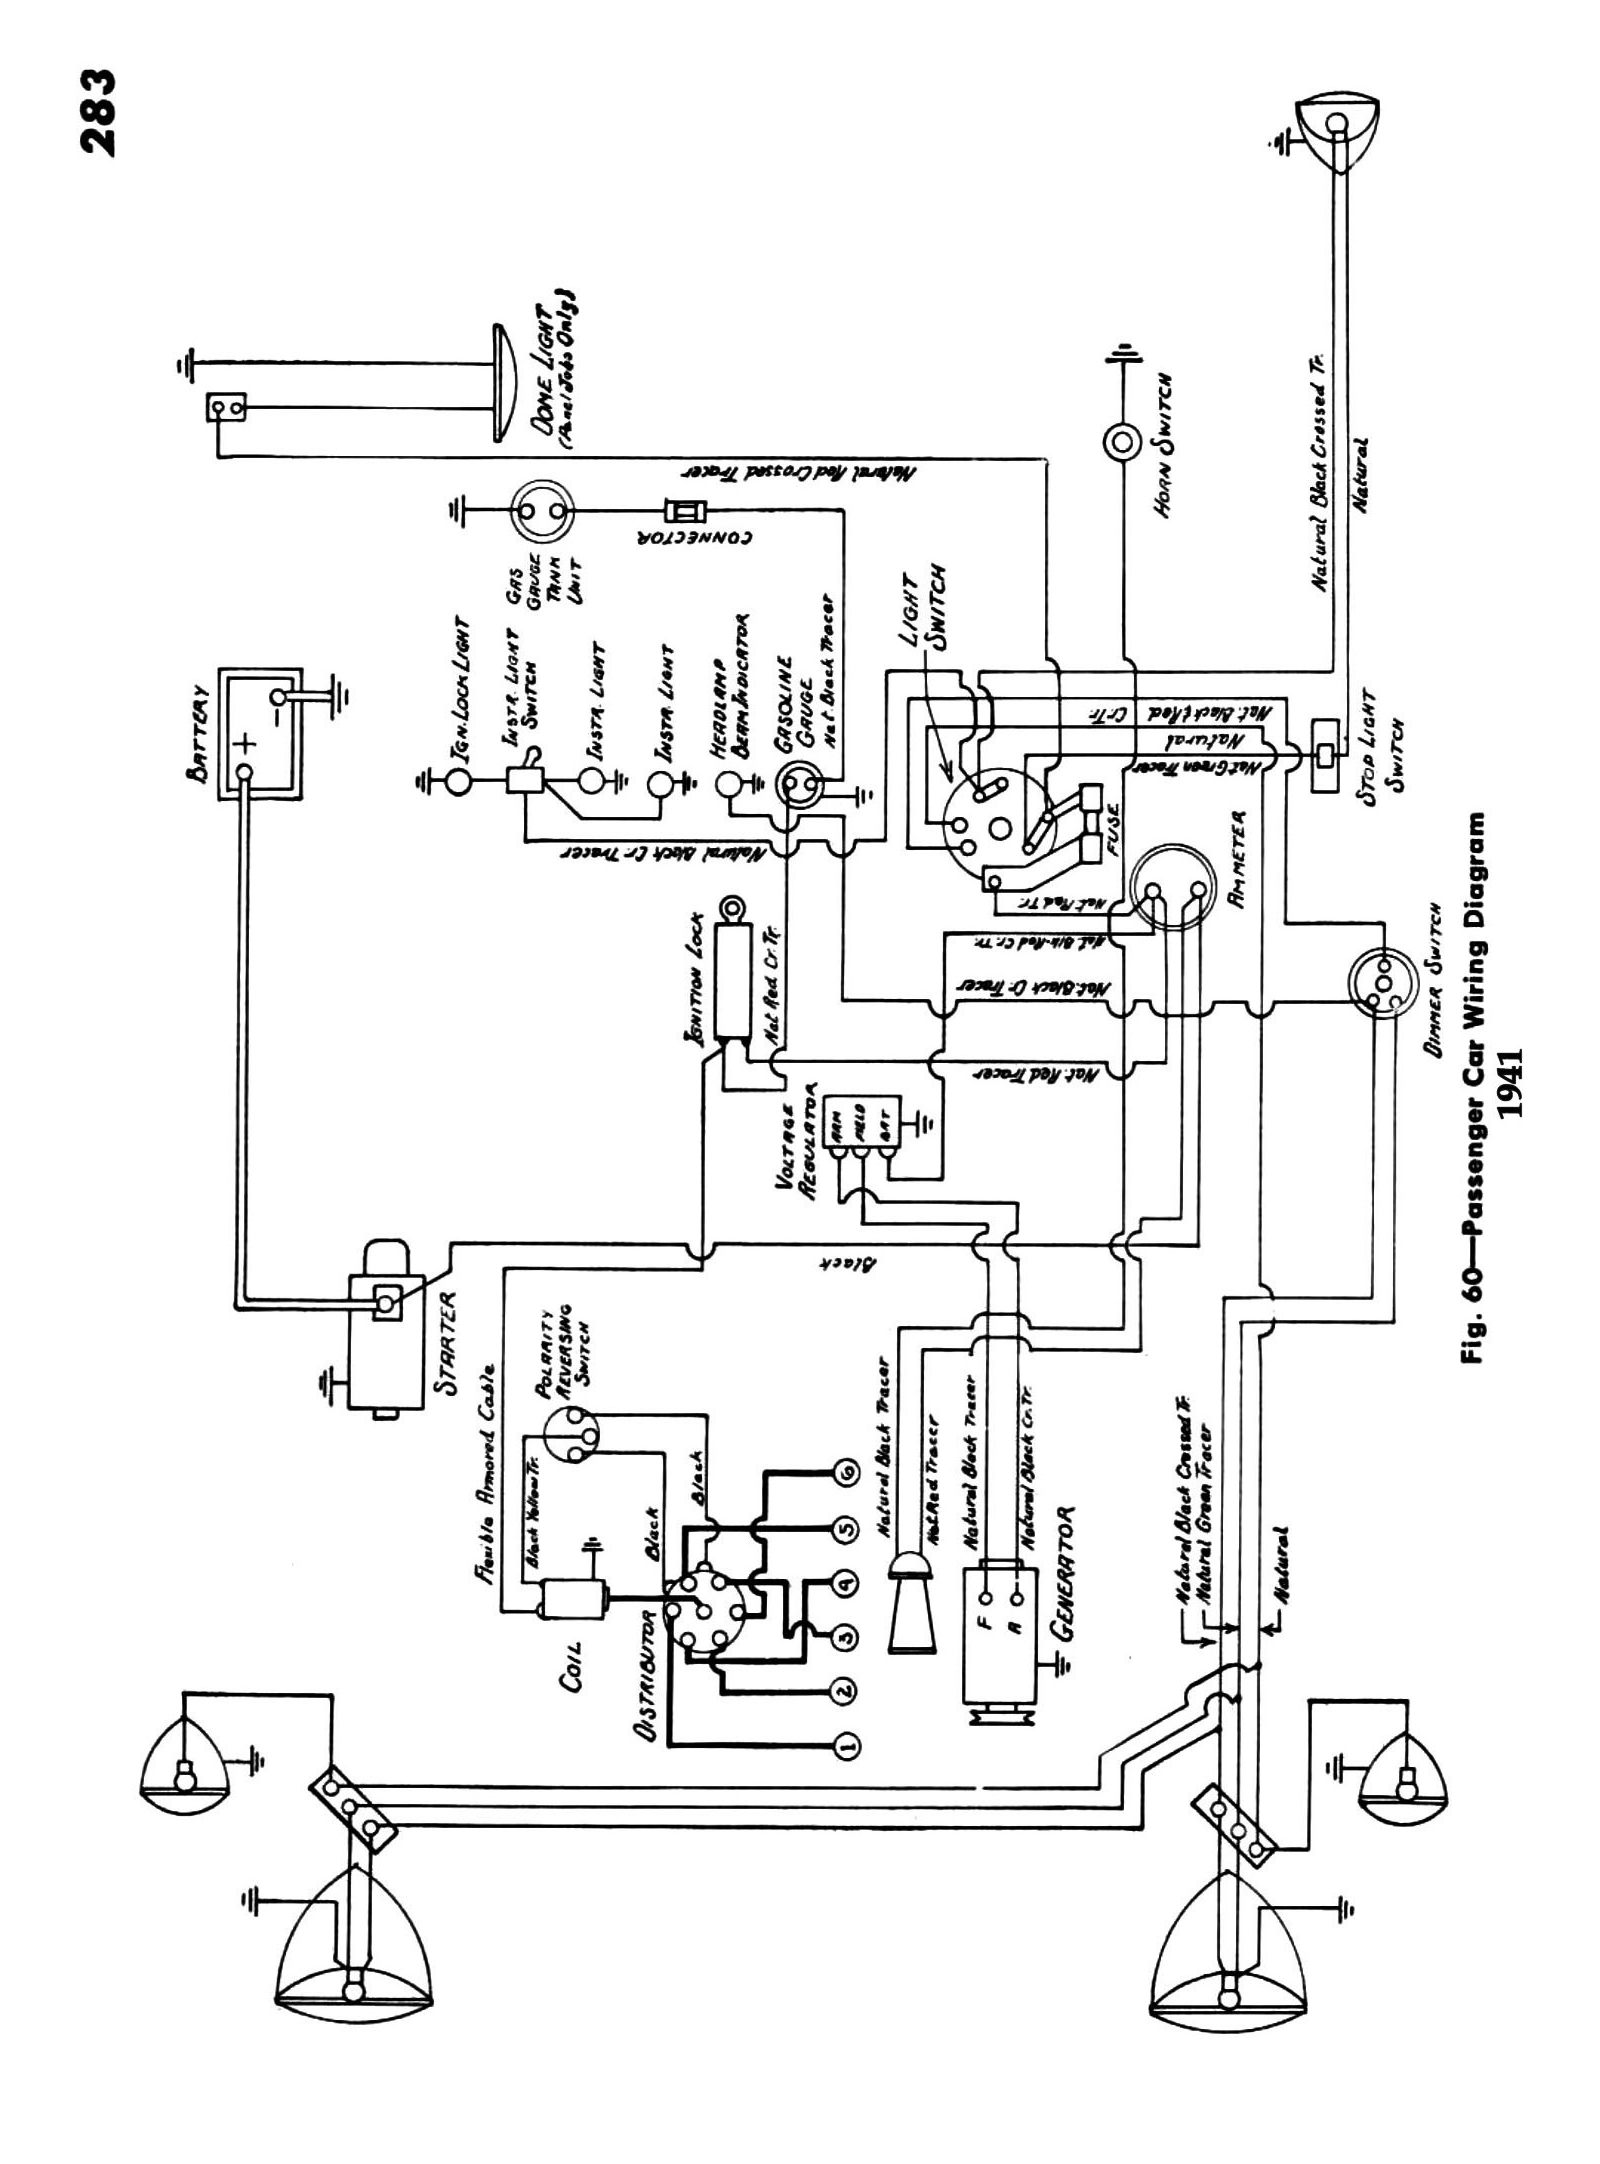 Where Is The Fuel Pressure Regulator Vacuum Hose Located On A 96 Chevy C150    108133 furthermore ShowAssembly additionally 1993 Cadillac Deville Air Cond Heat System likewise Mustang Wiring Diagrams moreover Buick Century 1992 Buick Century Thermostat Removal. on 2002 buick lesabre battery location